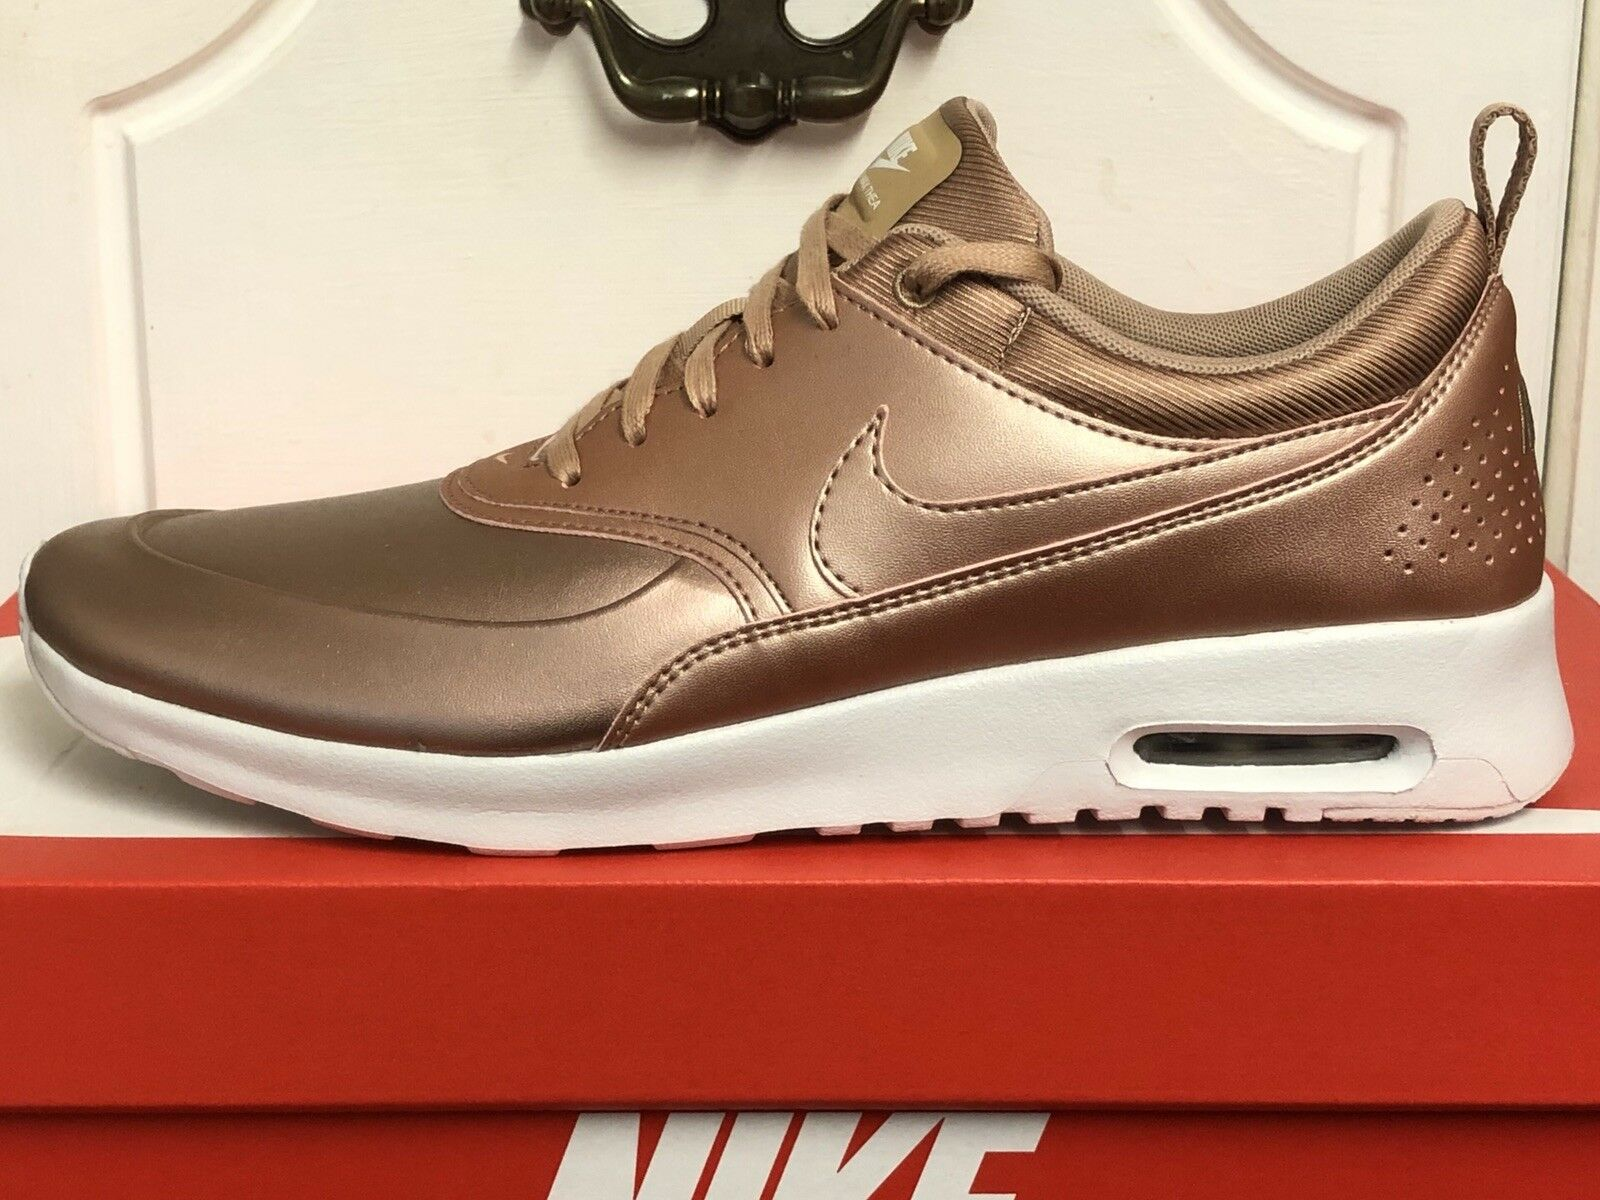 NIKE AIR MAX Thea SE TRAINERS SNEAKERS SHOES UK 9,5 EUR 44,5